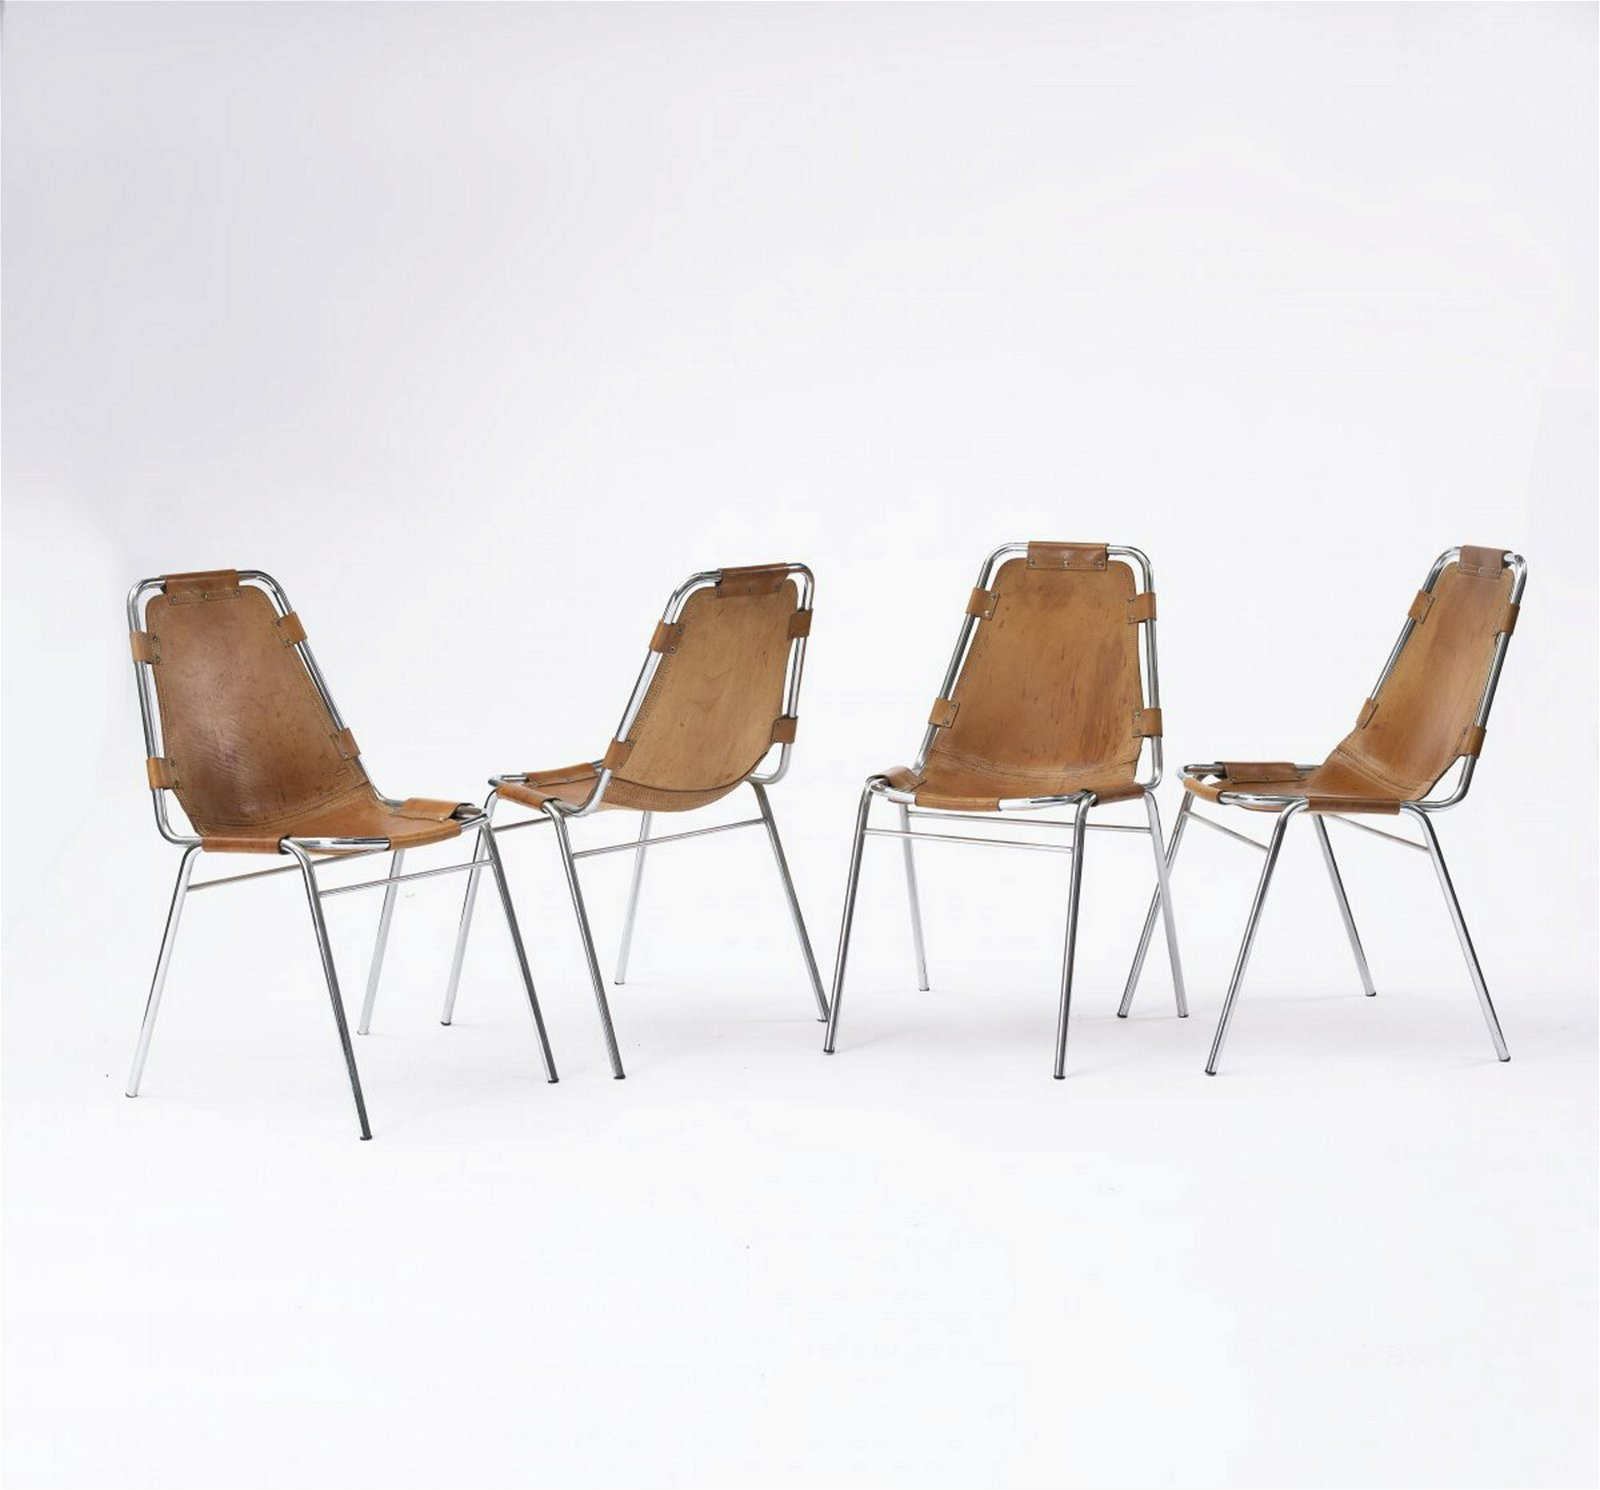 Charlotte Perriand (attributed), Four stacking chairs,